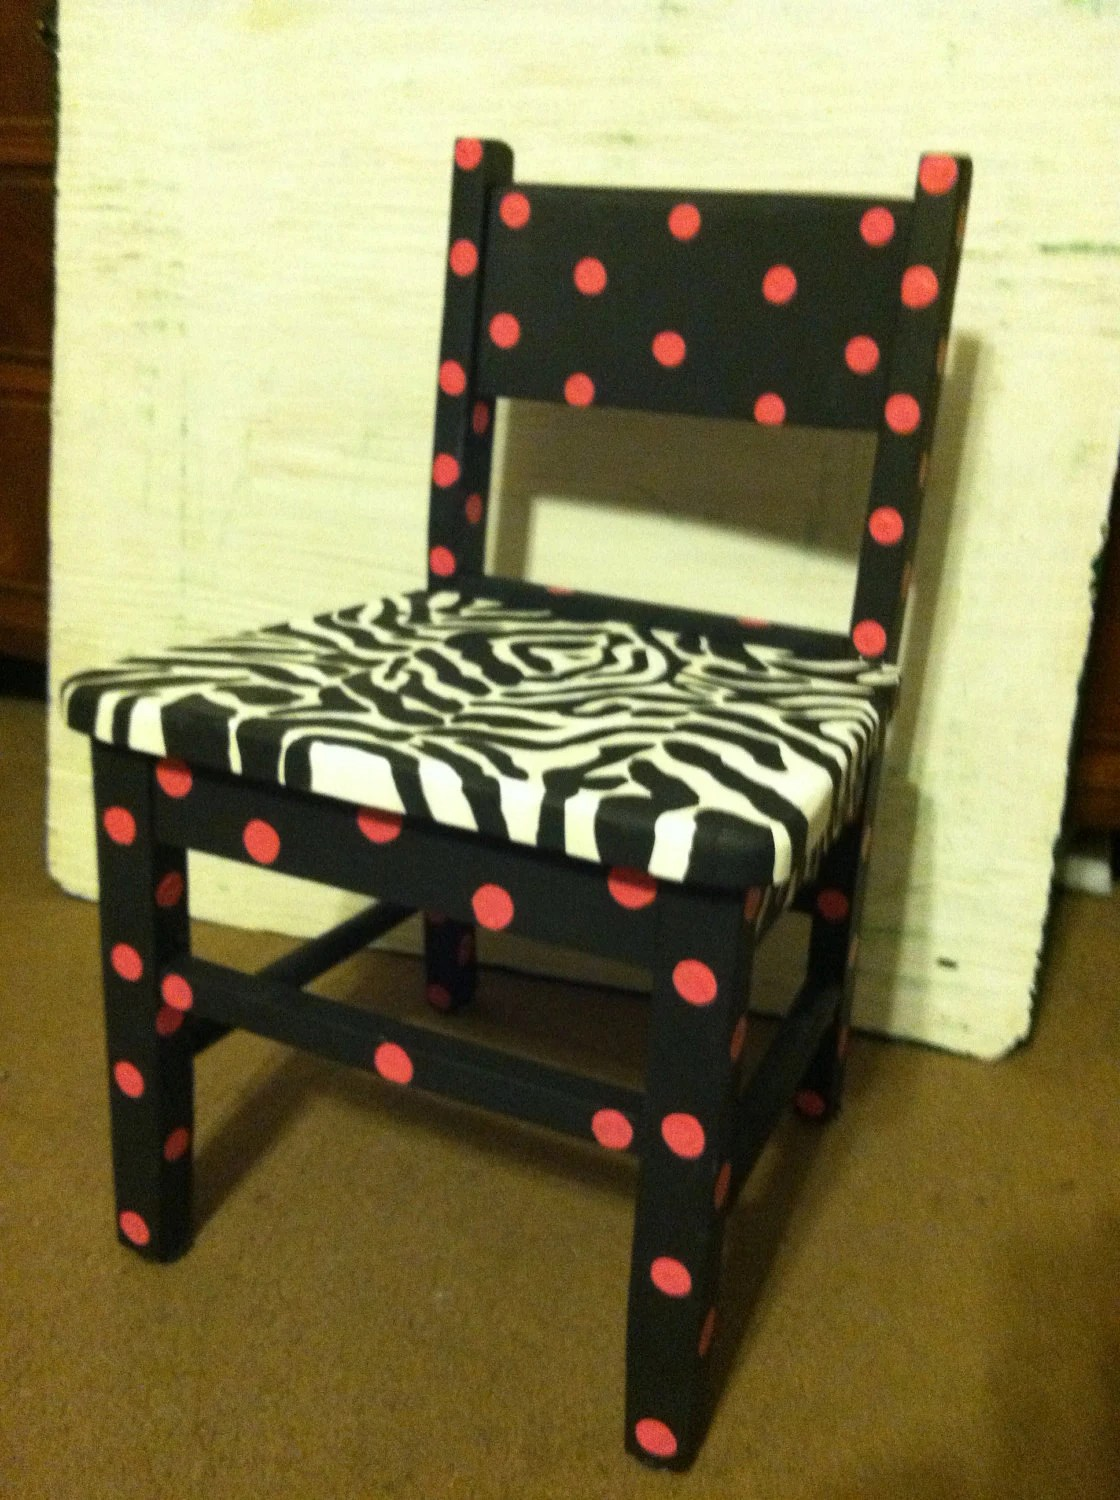 funky wooden chairs baby sleeping chair etsy your place to buy and sell all things handmade